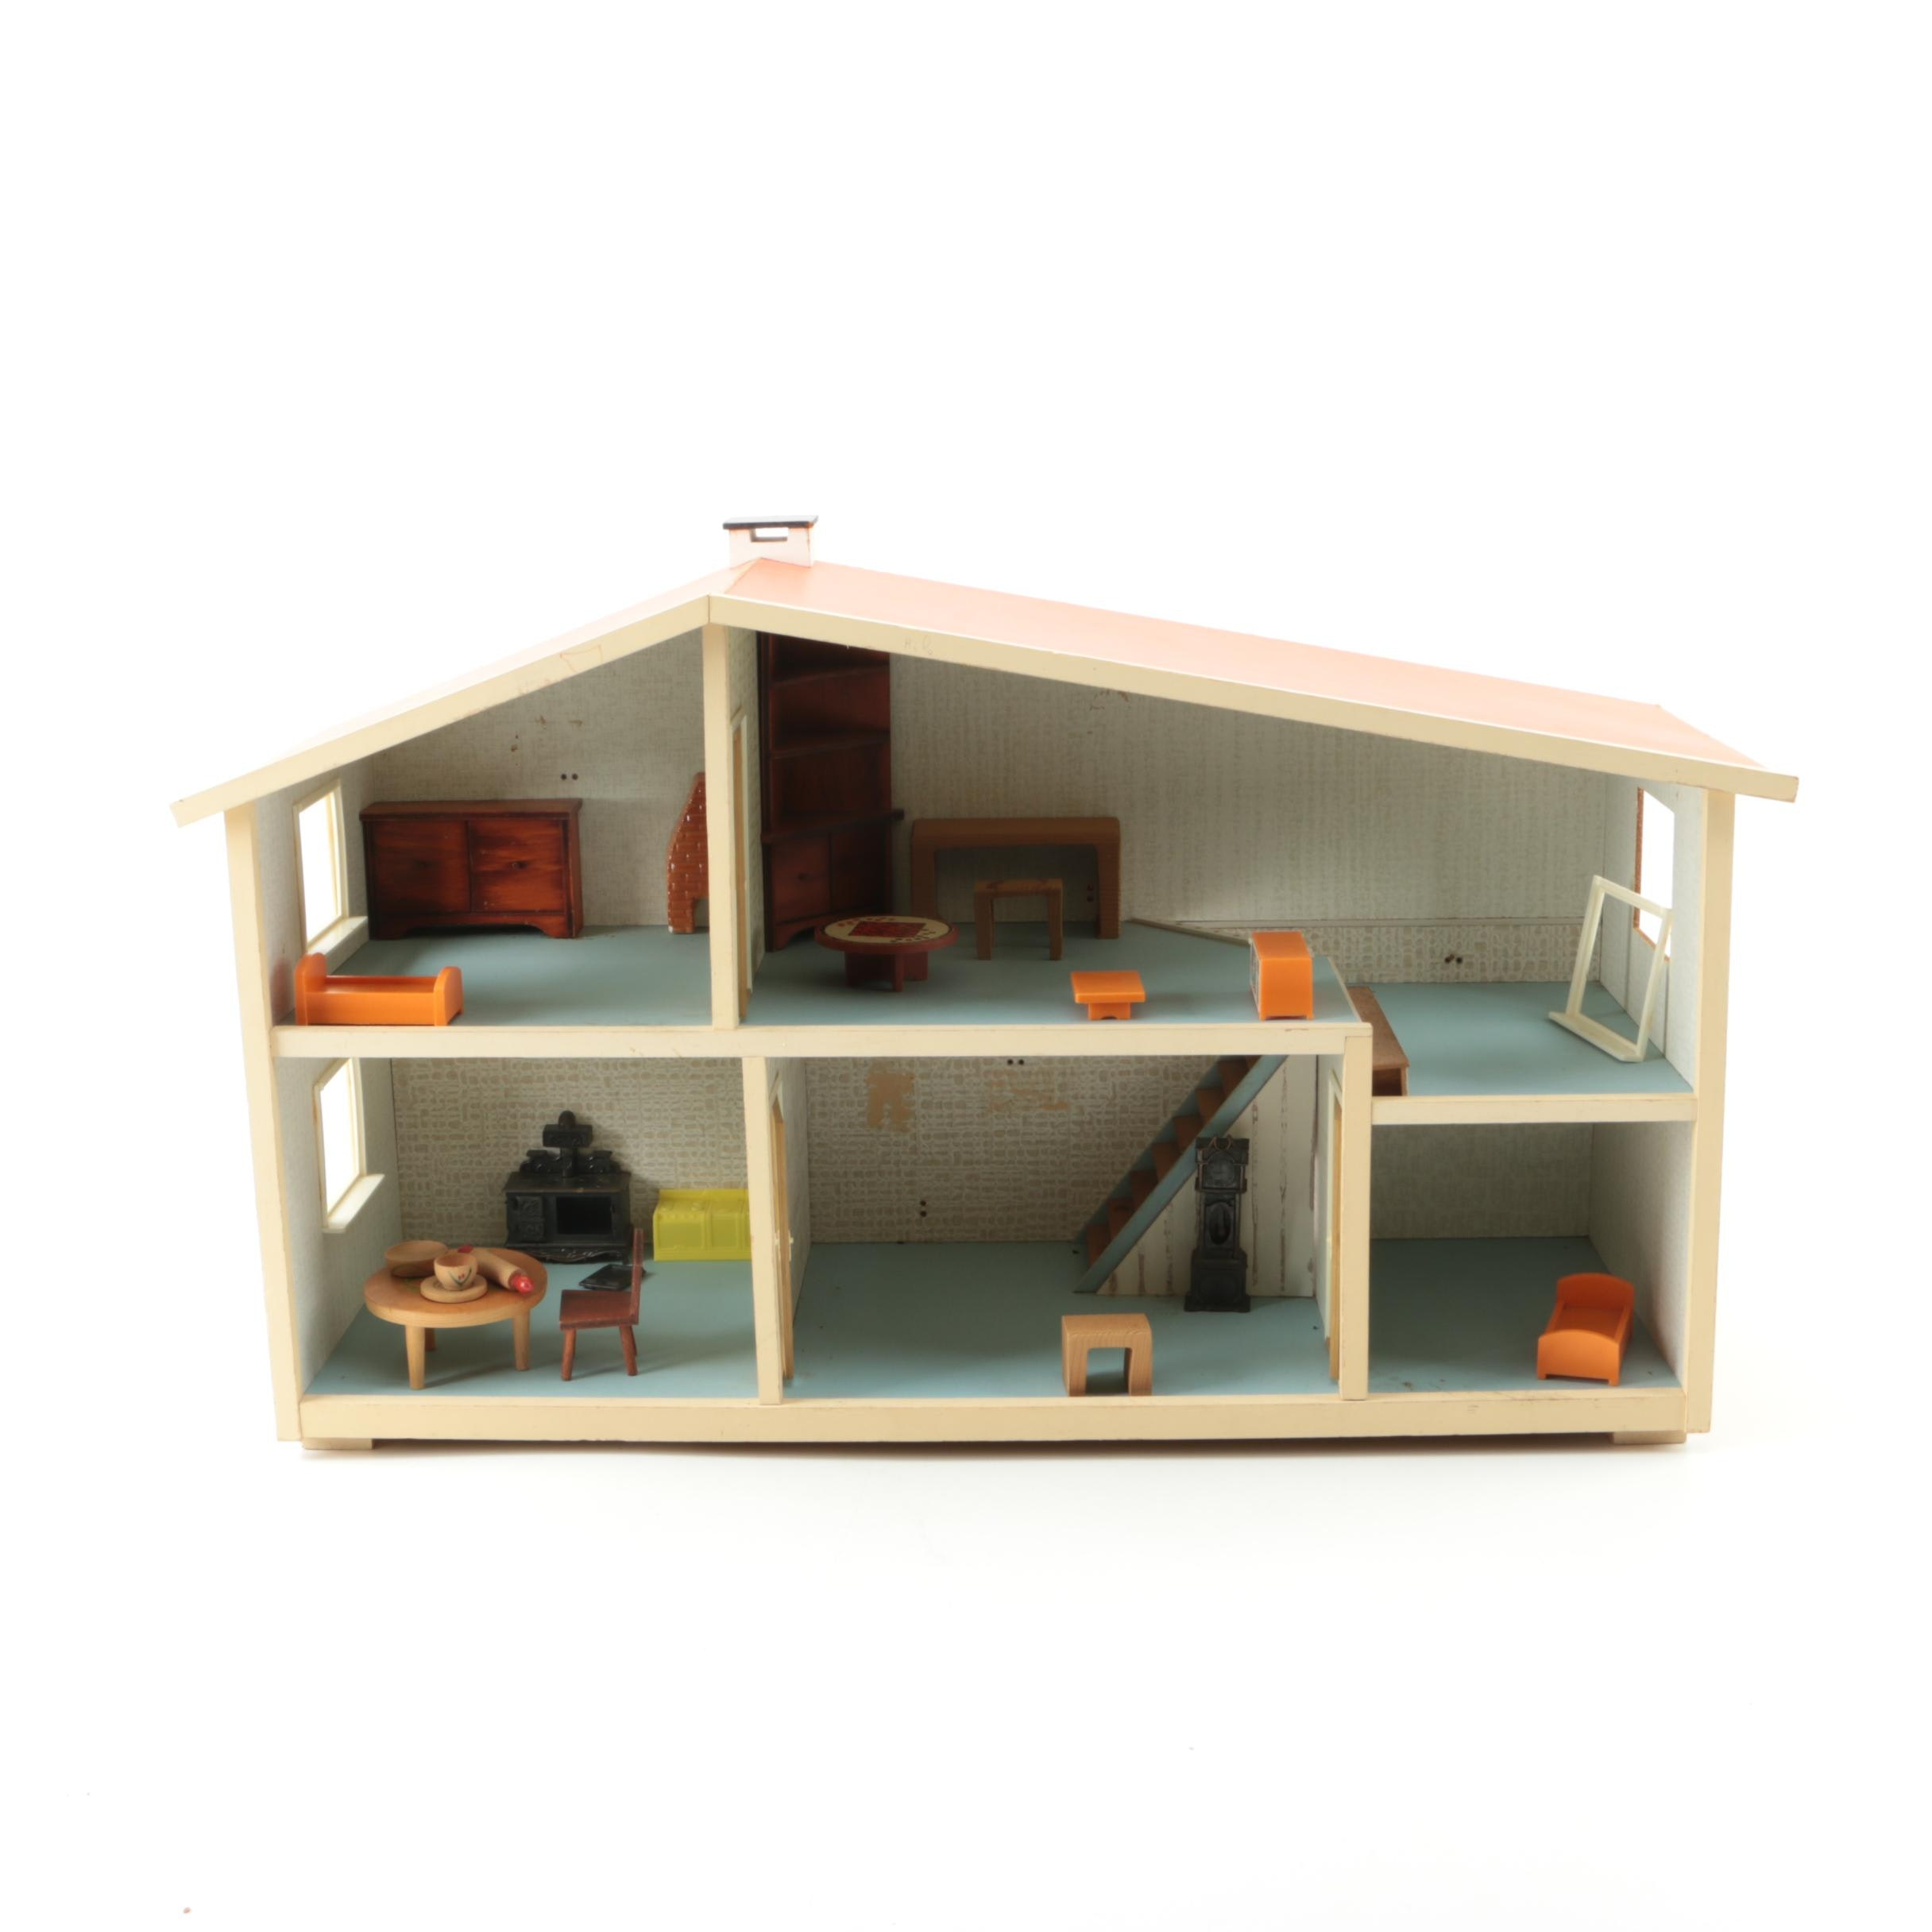 1960s Lundby Dollhouse with Furnishings